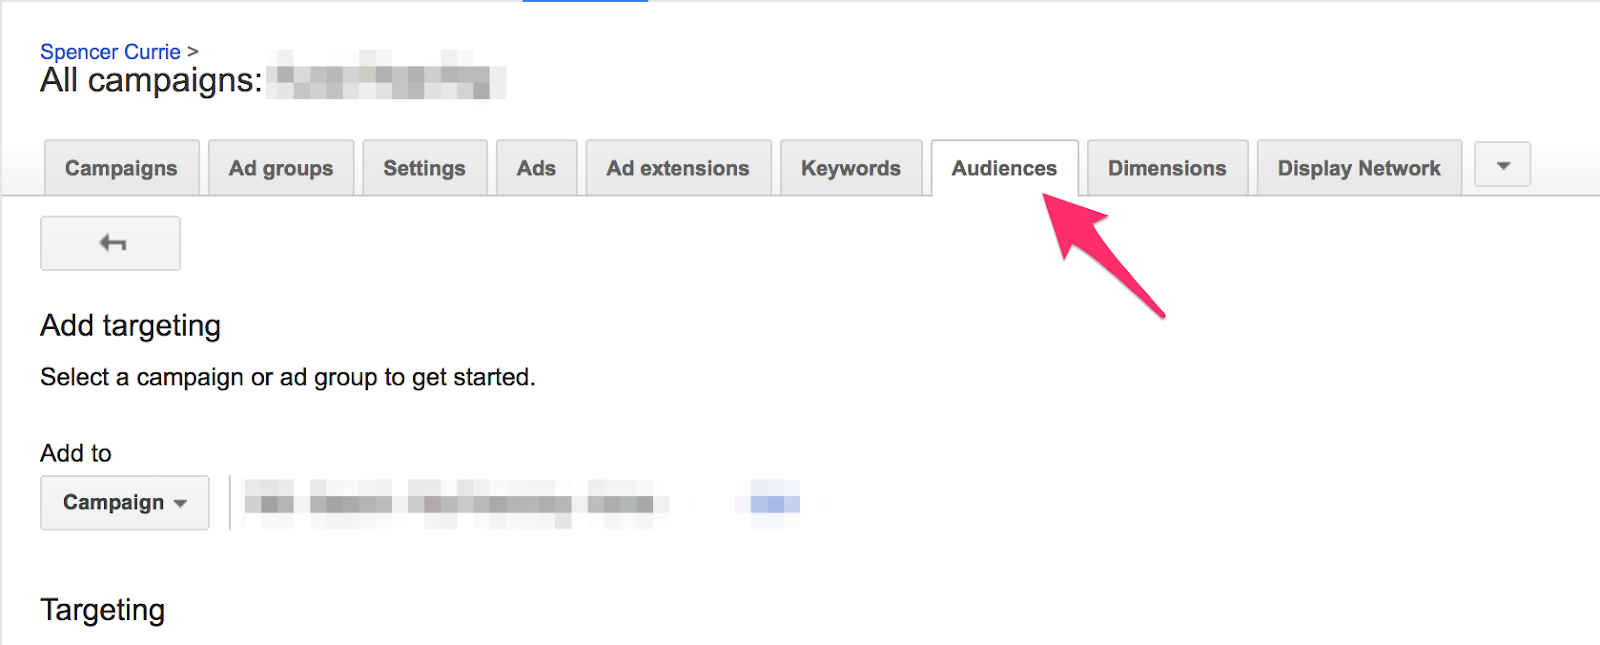 Navigate to Audiences tab under All campaigns.